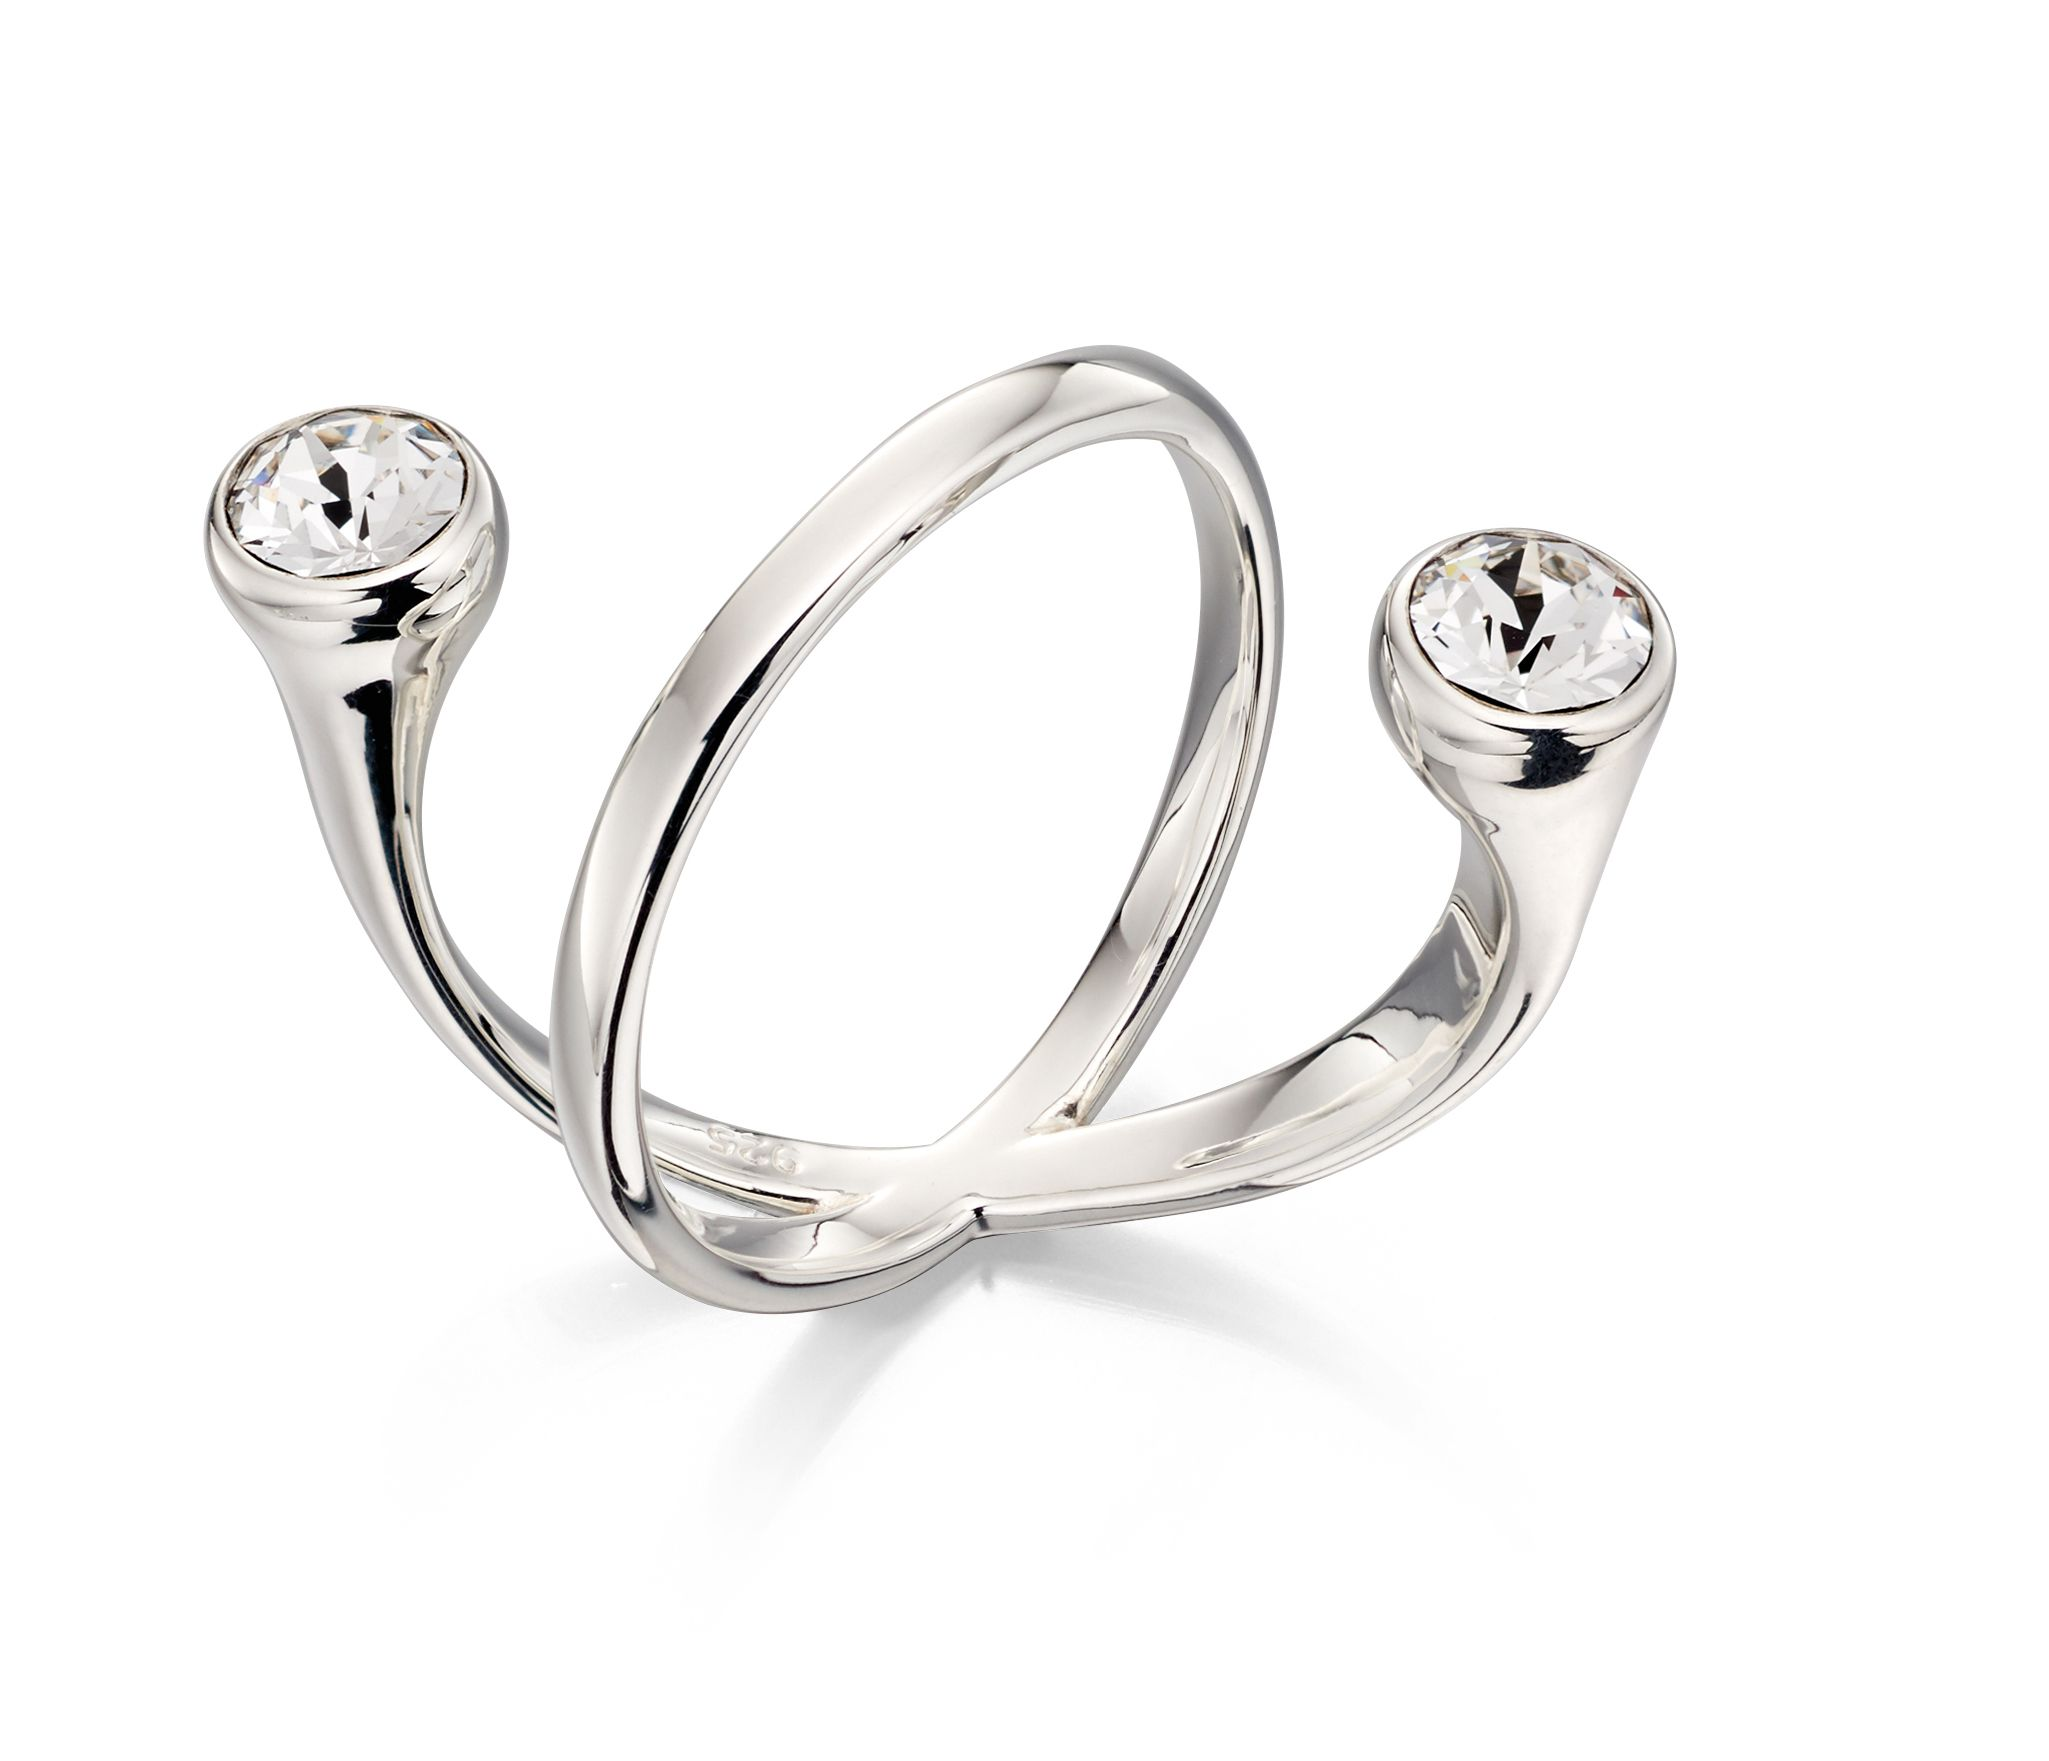 Elements Silver Women's 925 Sterling Silver Floating Clear Crystal by Swarovski Ring